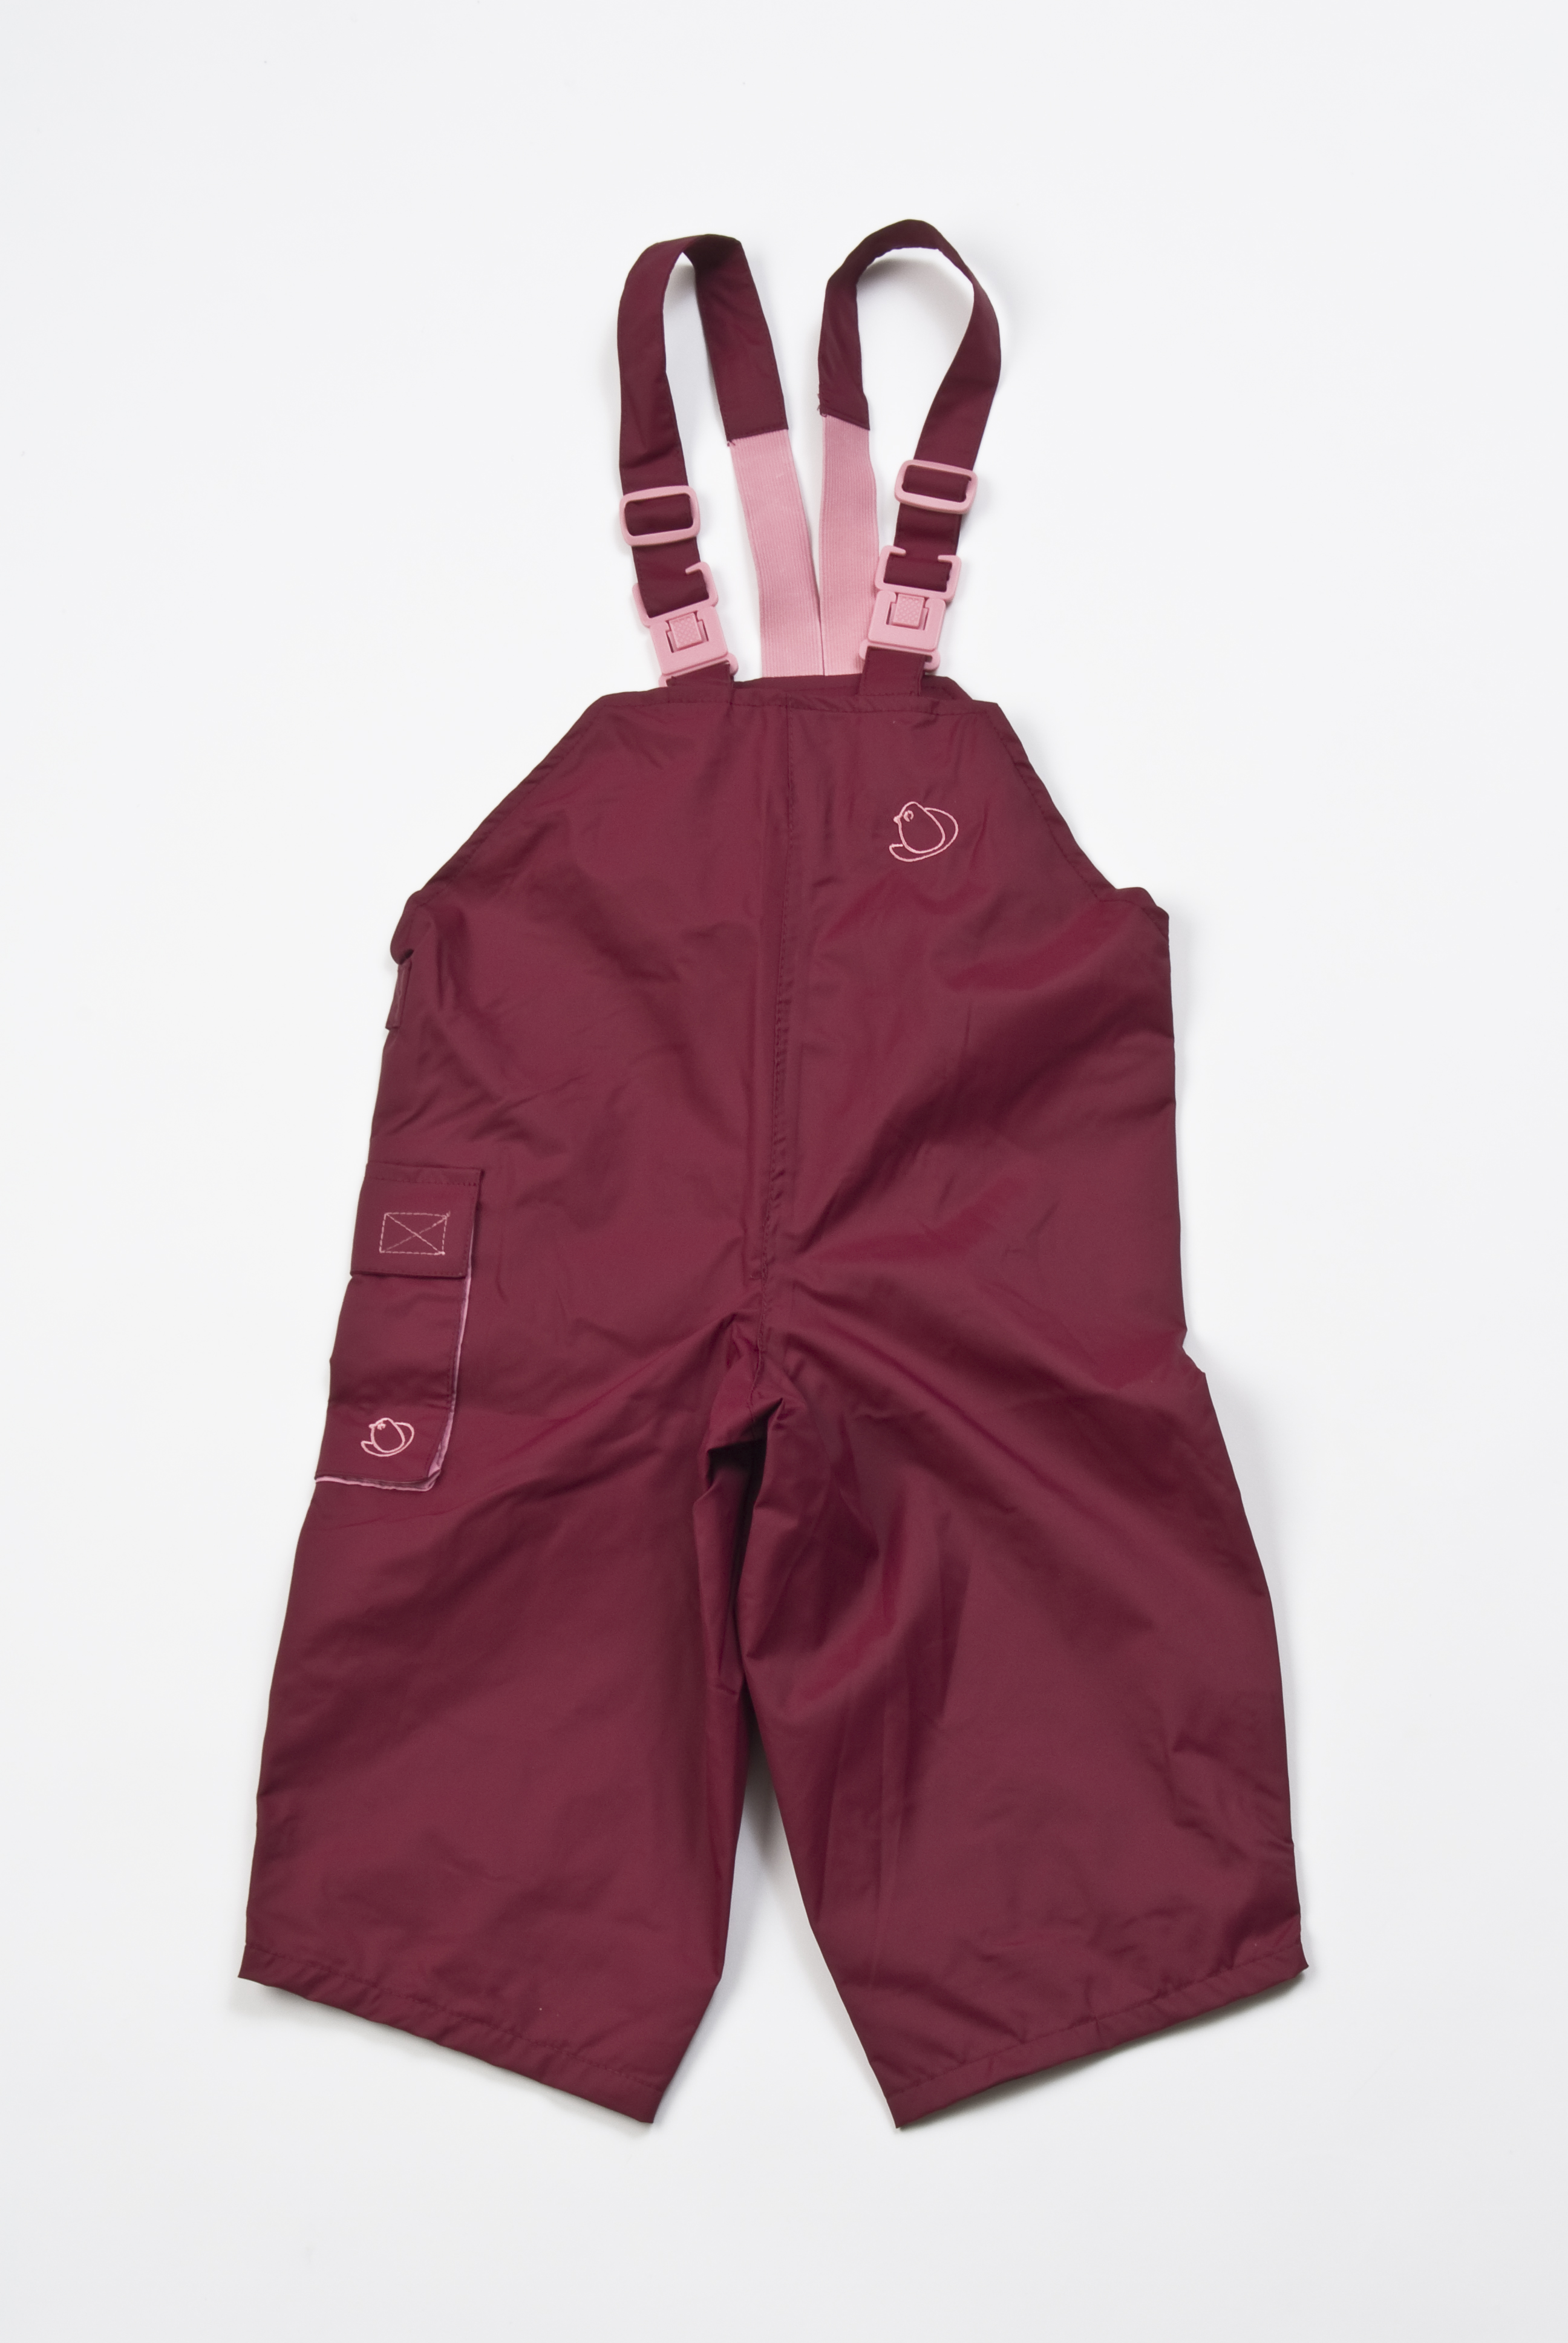 Hippychick Waterproof Dungarees